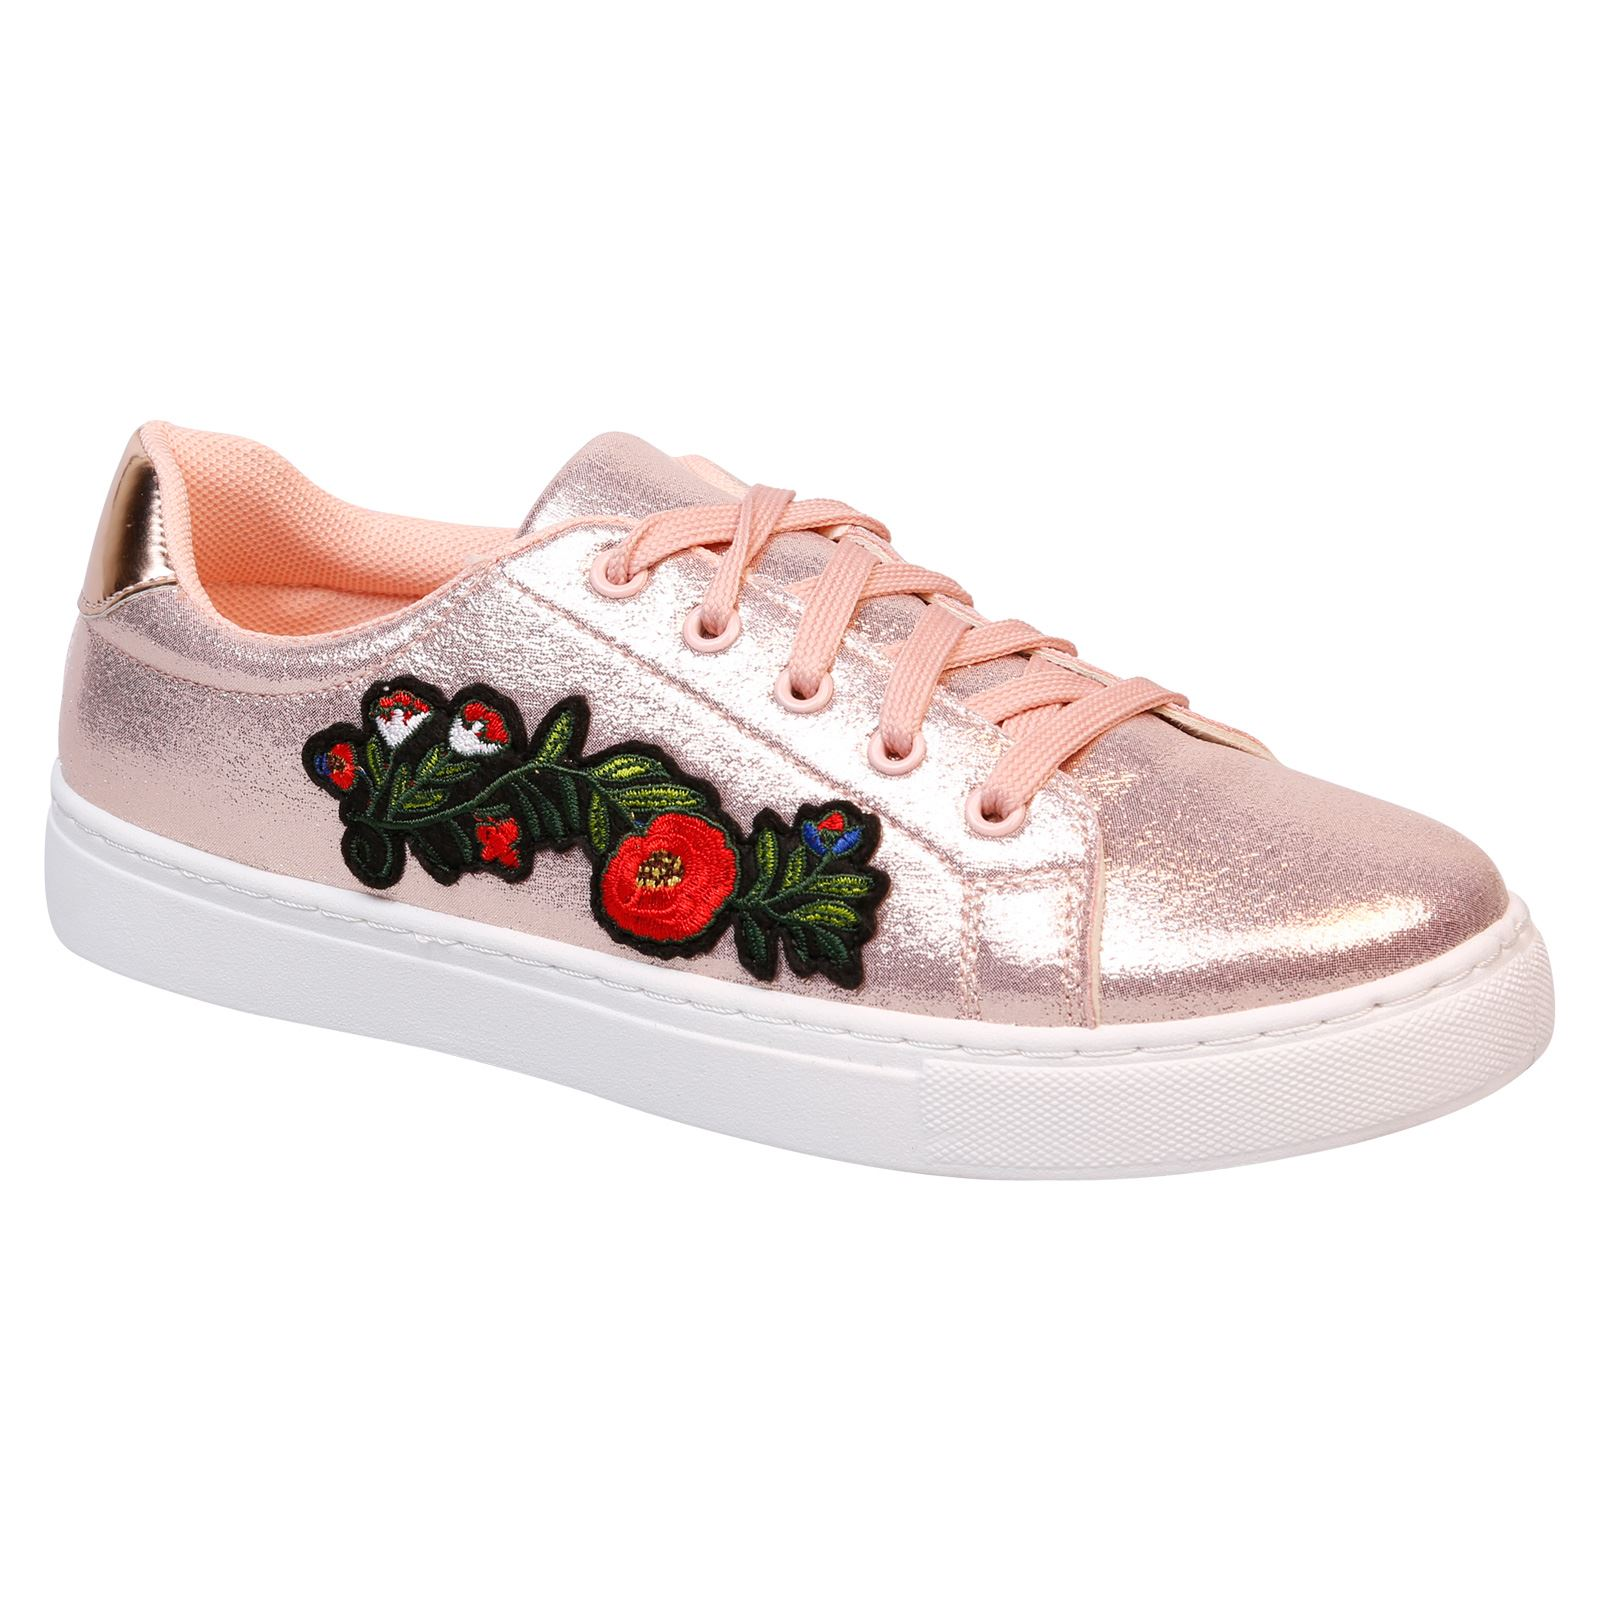 Halle Womens Flats Low Heels Lace Up Skater Trainers Floral Ladies Shoes Size